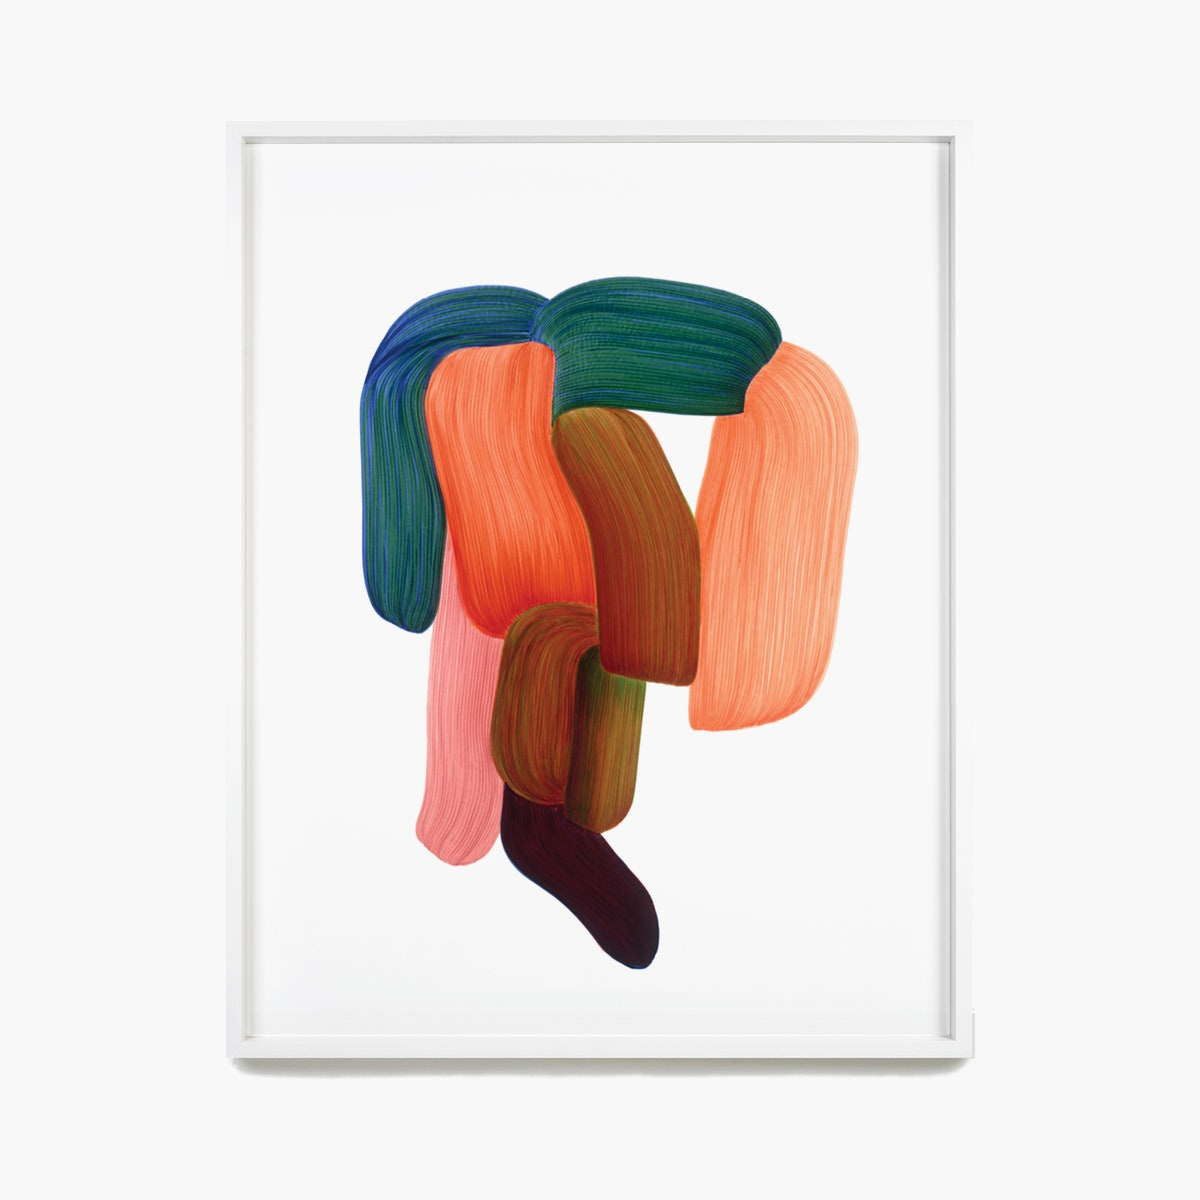 Drawing 14, Bouroullec